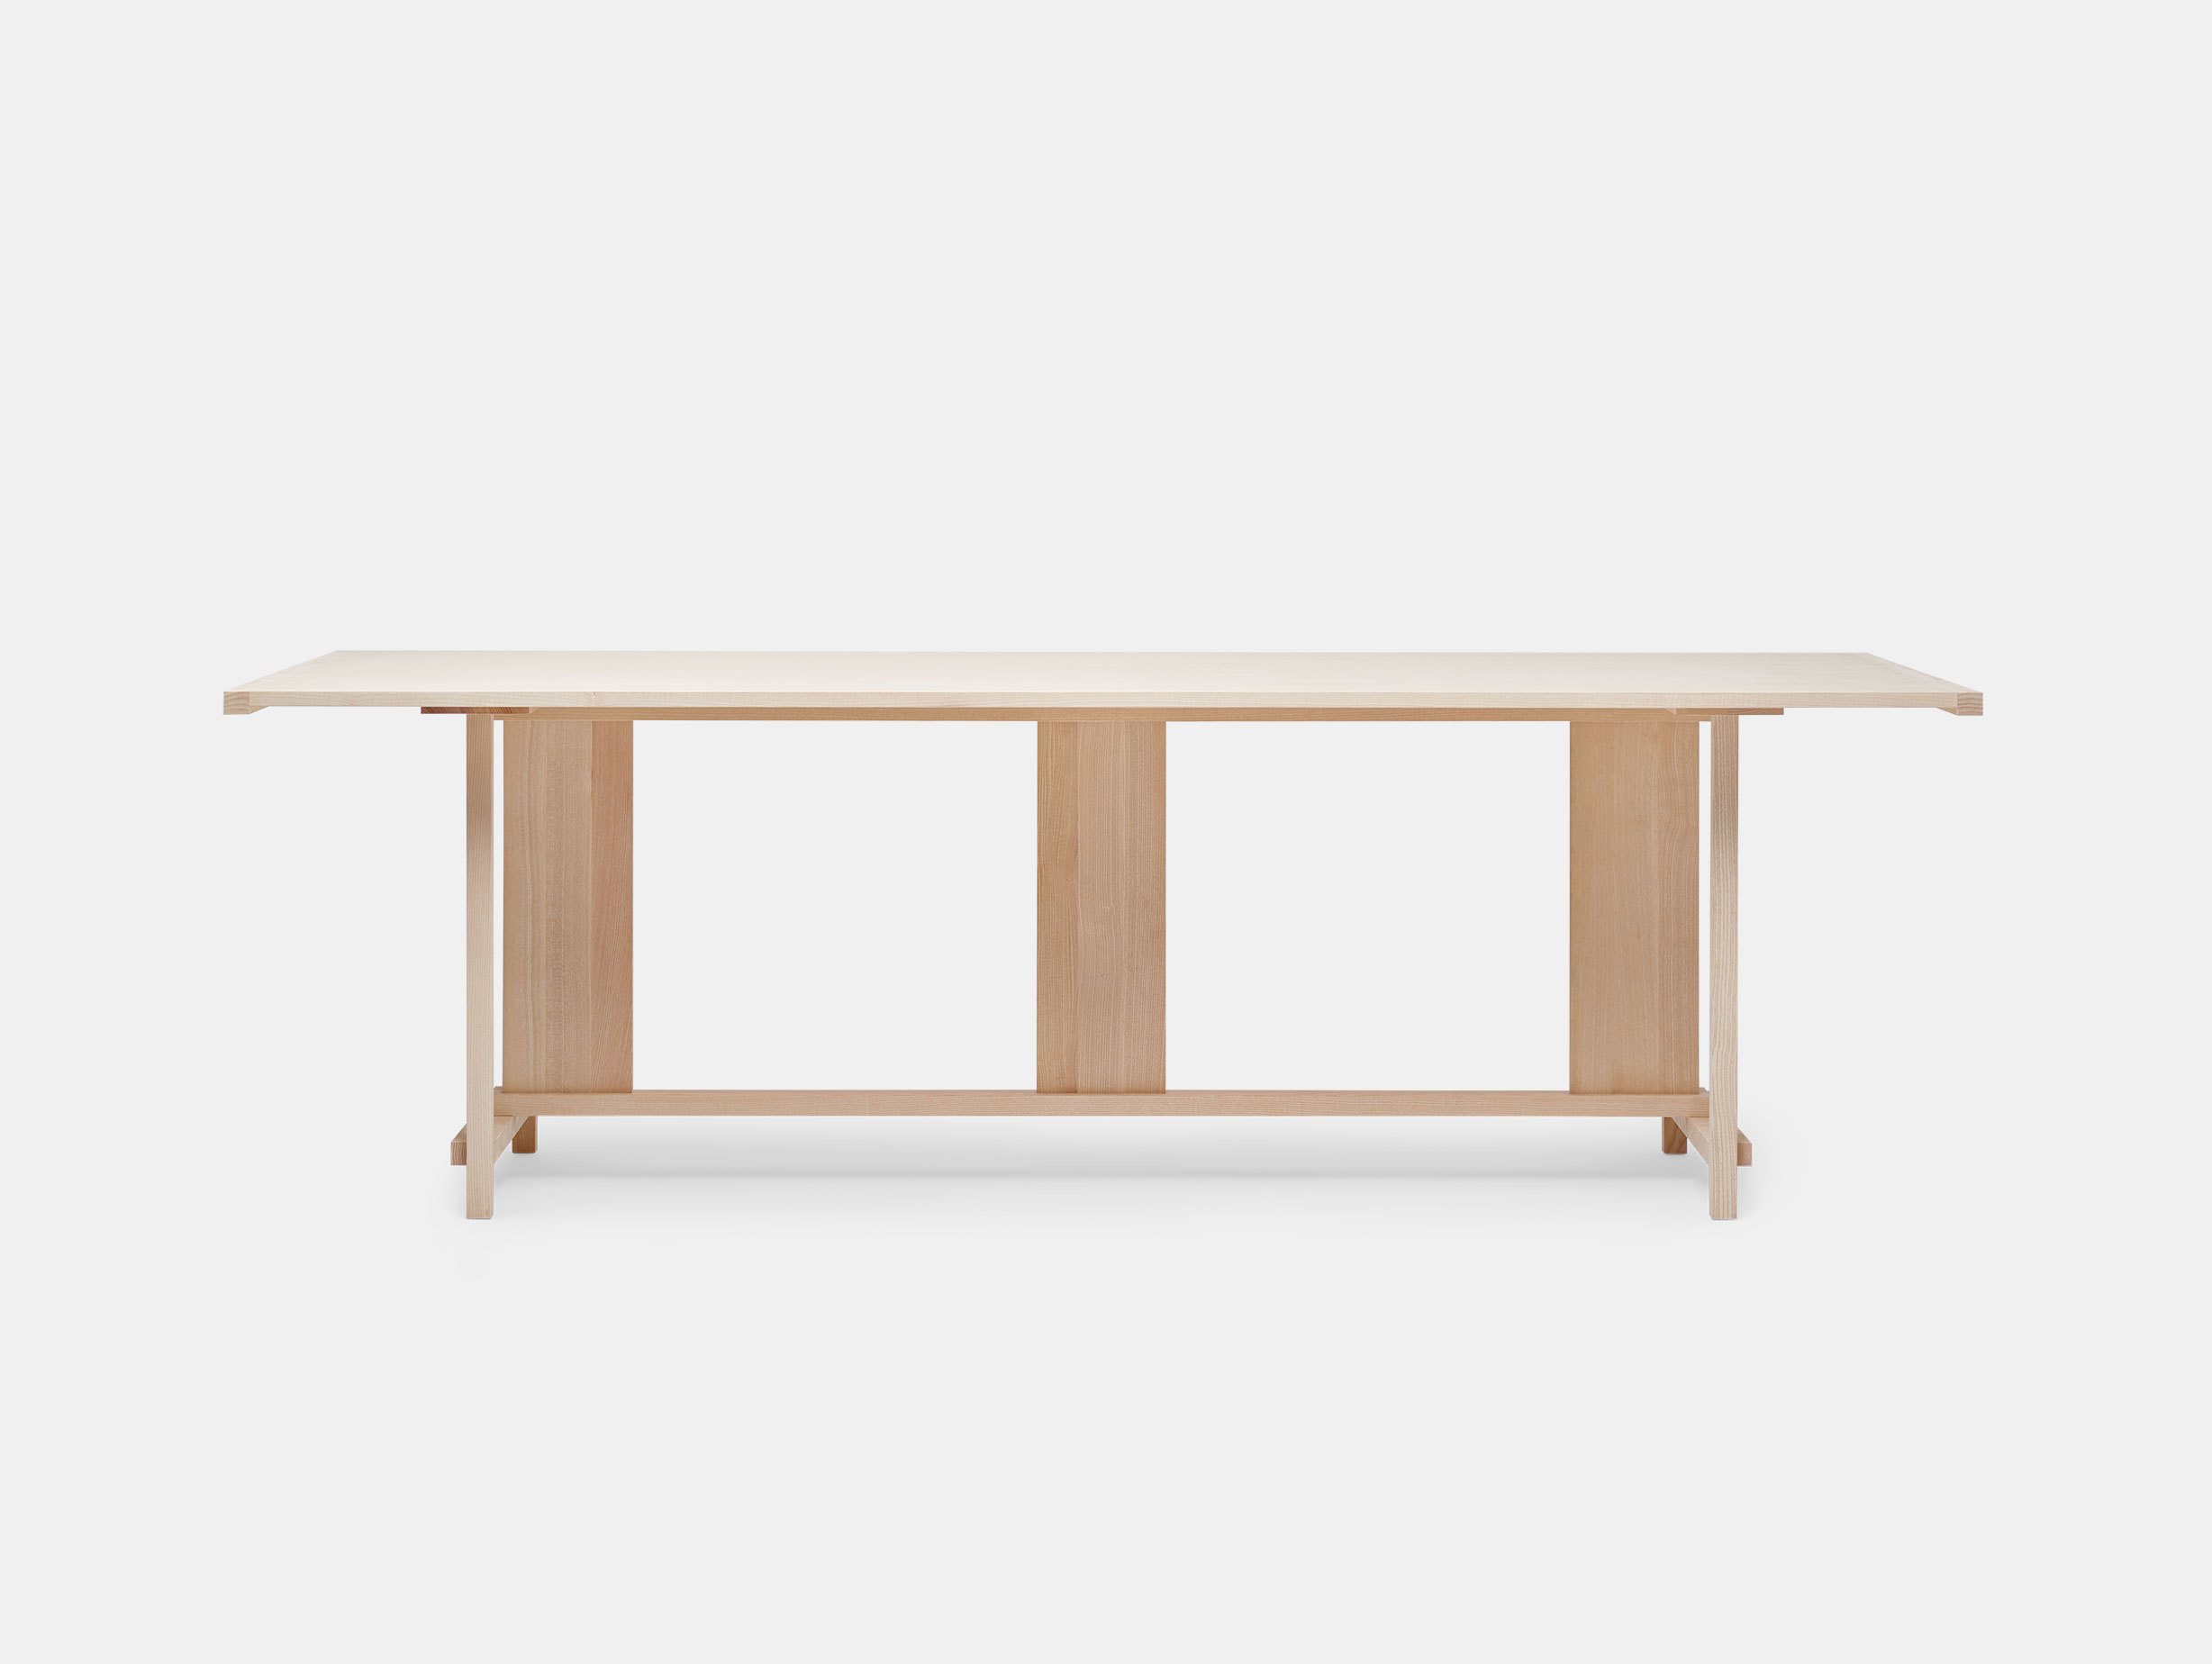 Mattiazzi Clerici Table Konstantin Grcic